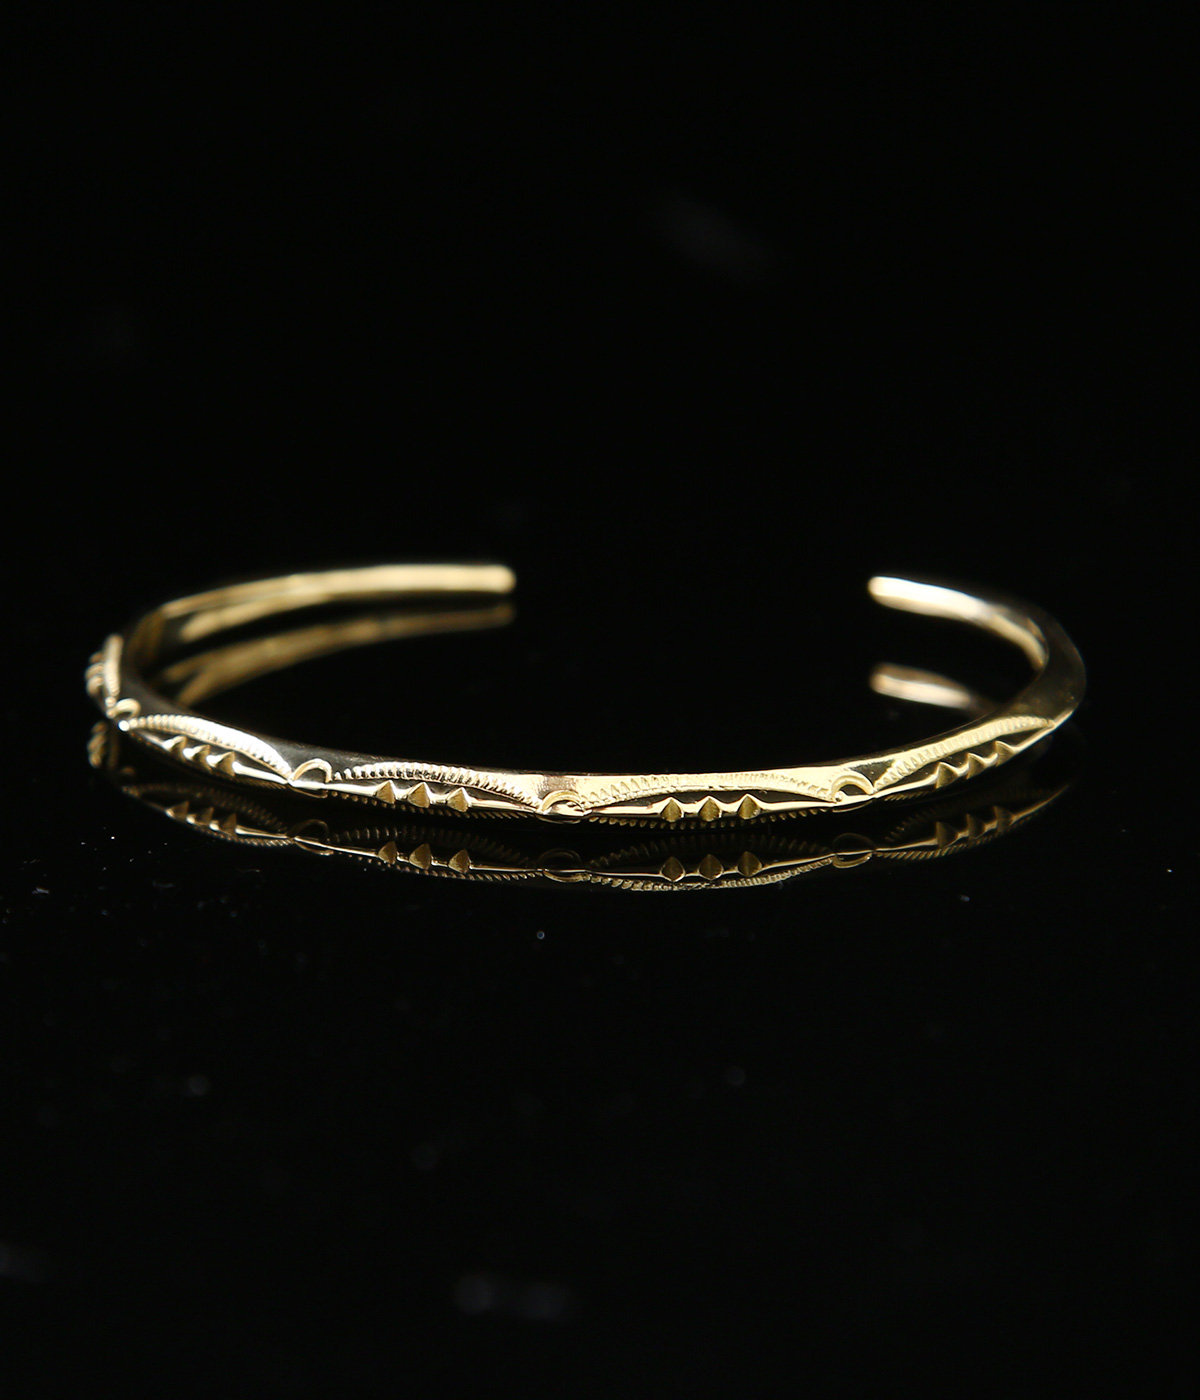 EXTRA THIN TRIANGLE BANGLE -3POINT- 18K